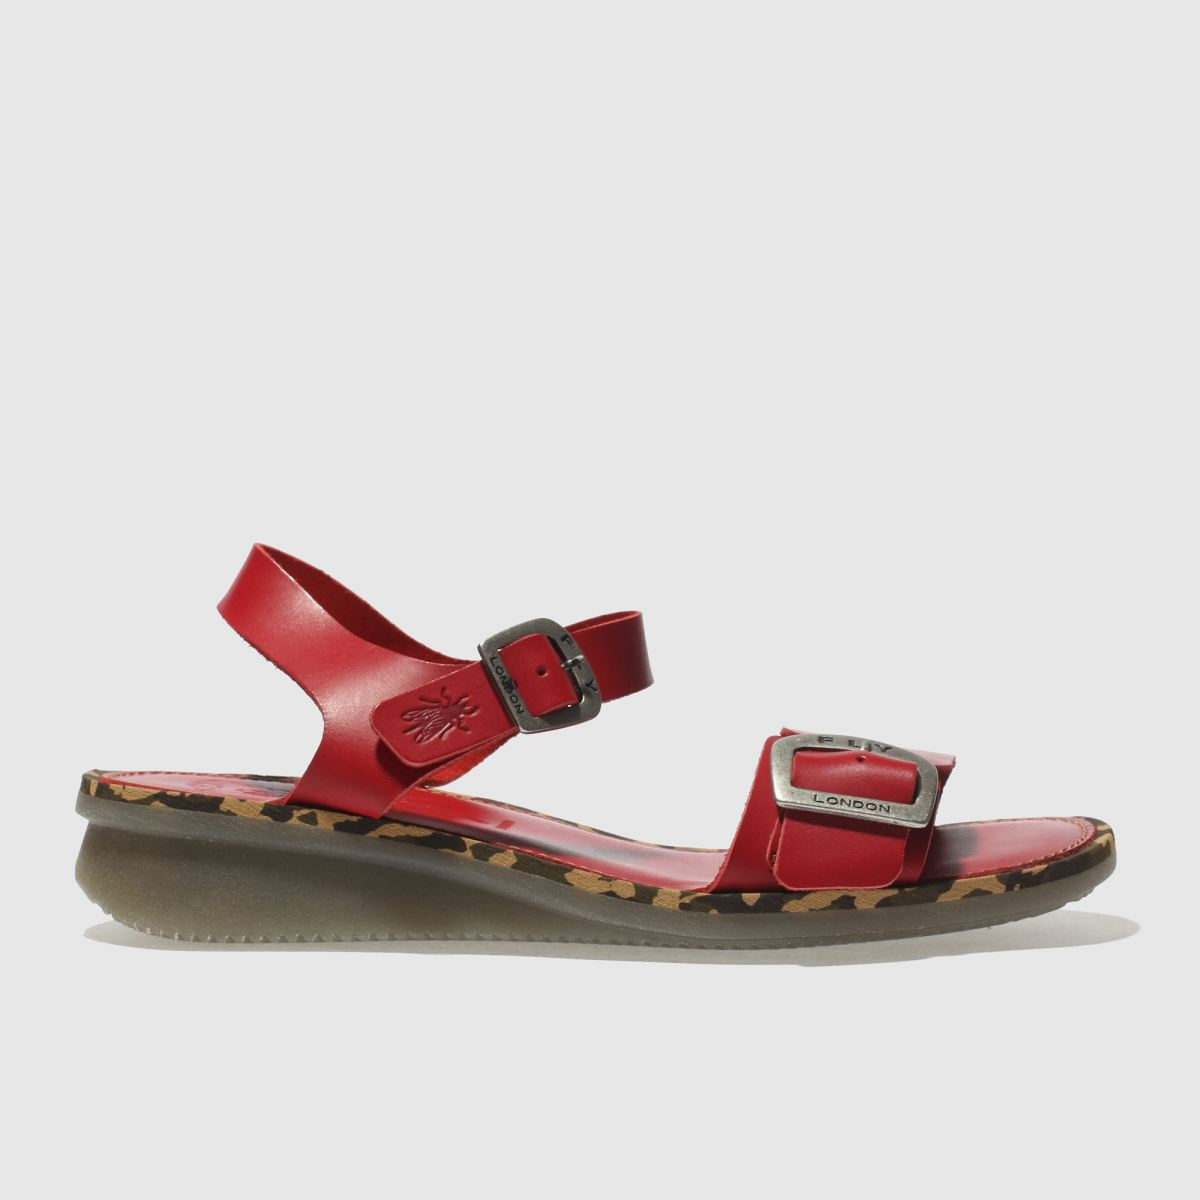 Fly London Red Comb Sandals